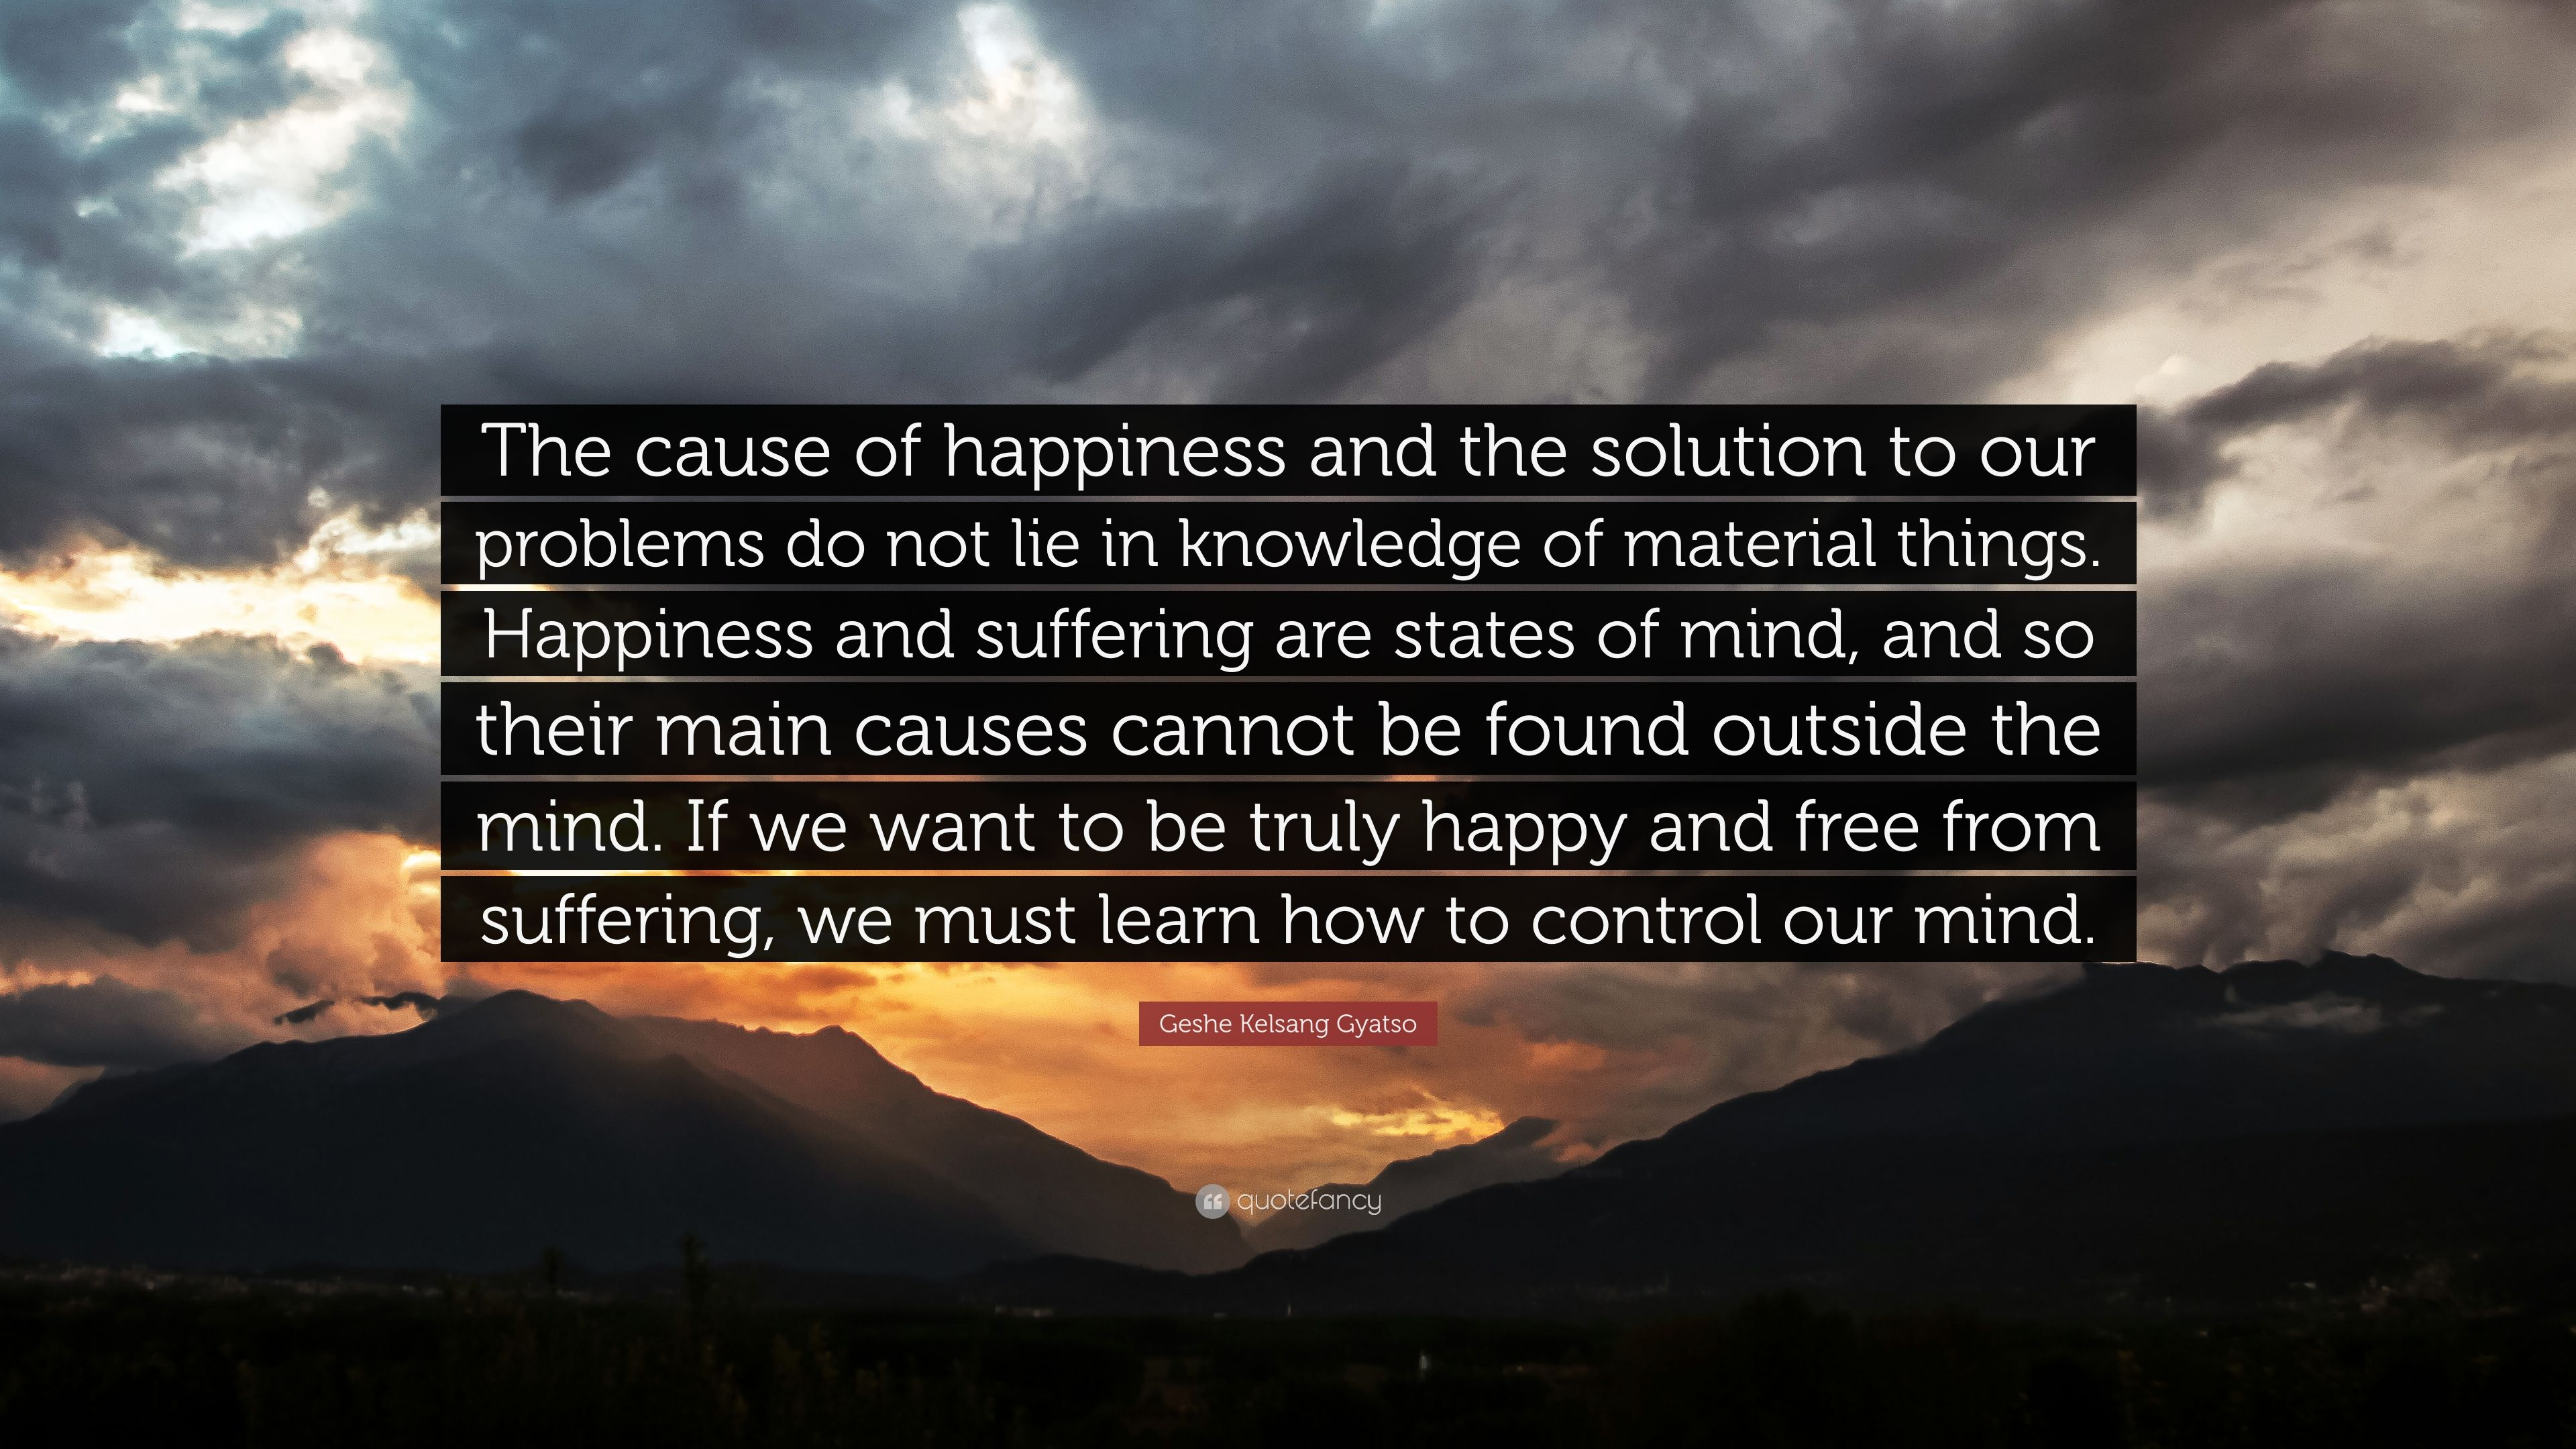 Geshe Kelsang Gyatso Quote The Cause Of Happiness And The Solution